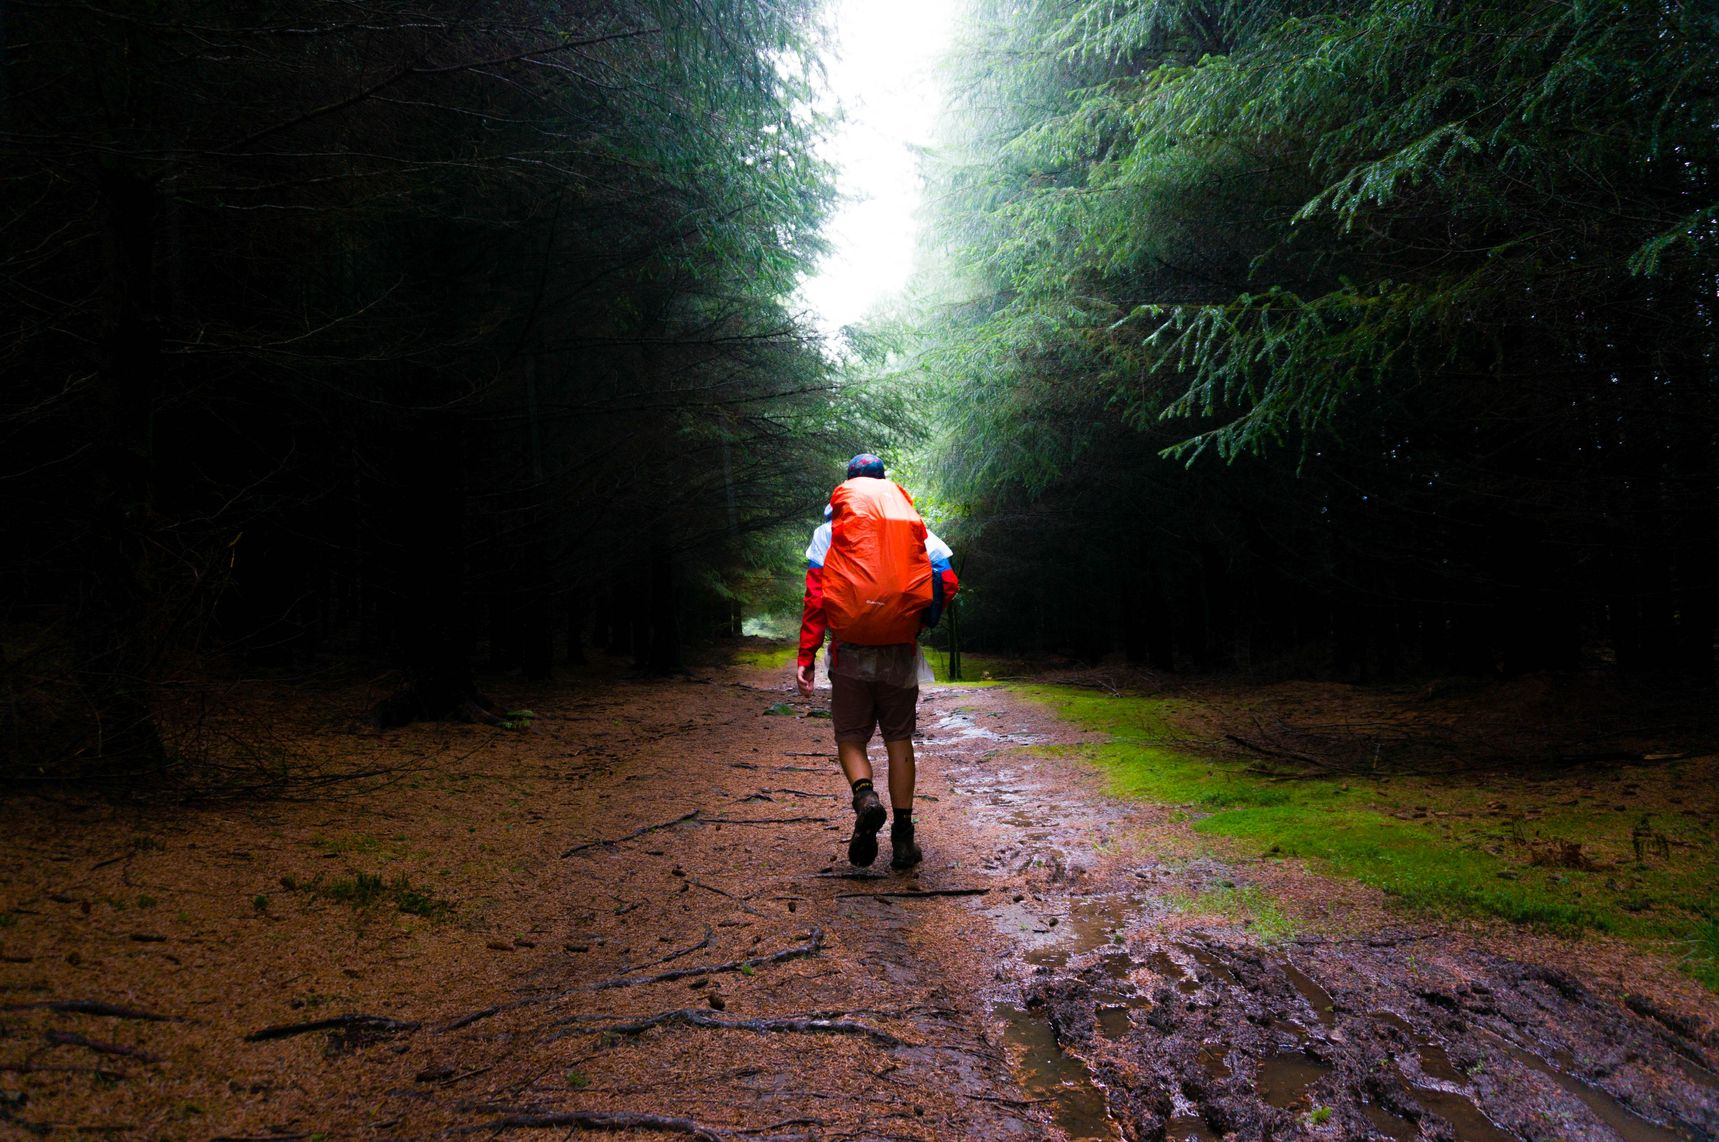 Man with a backpack walking into the forest